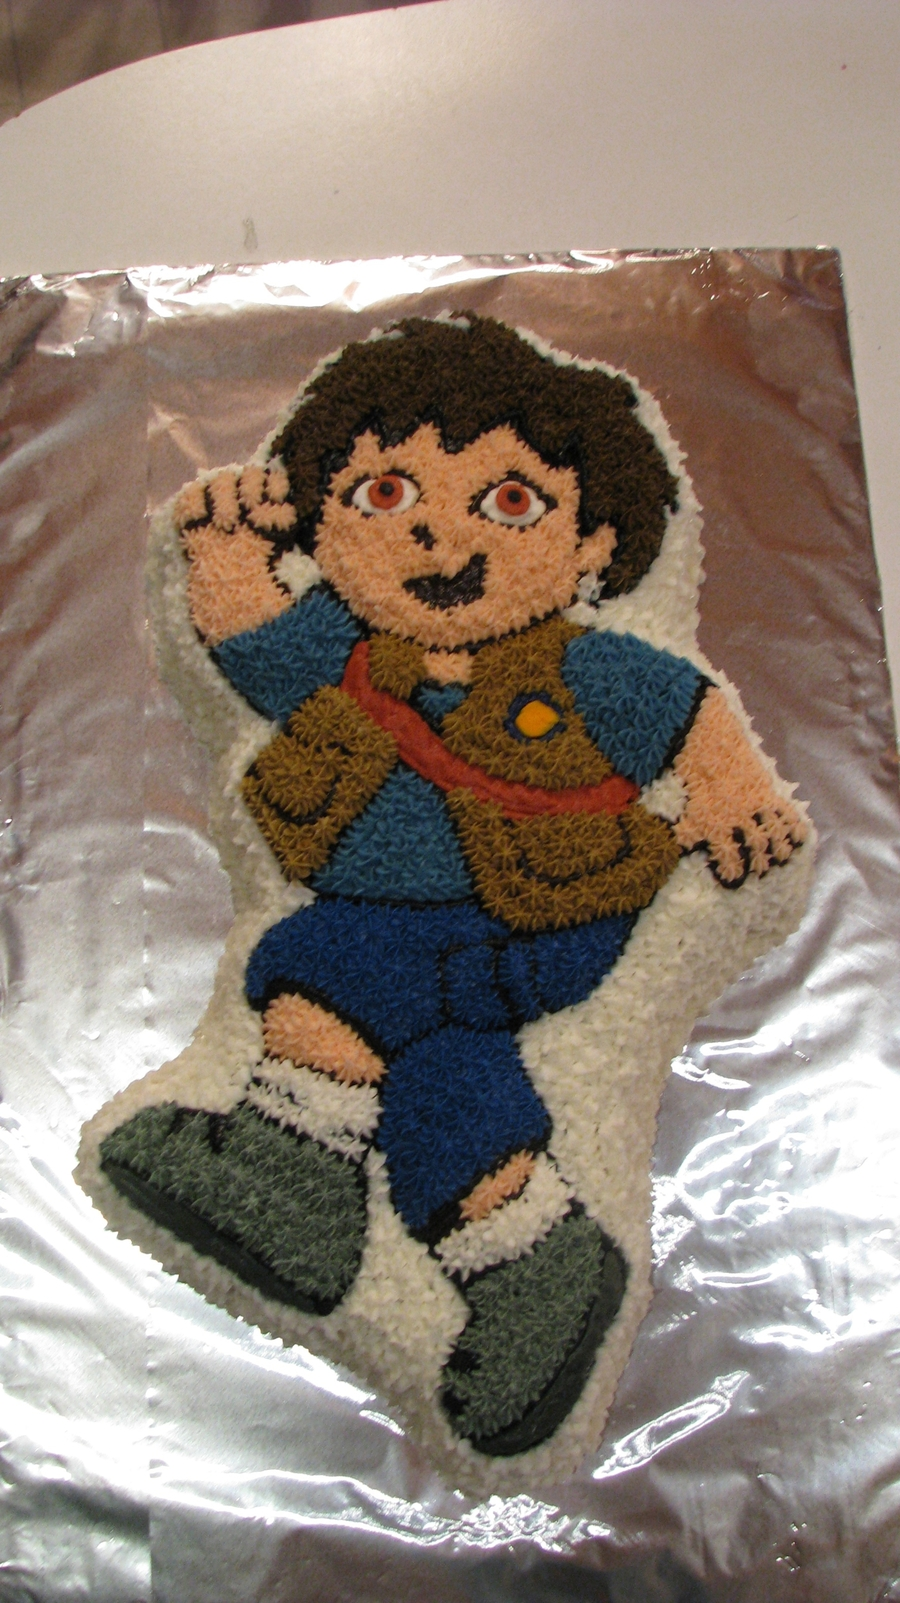 Go Diego Go on Cake Central